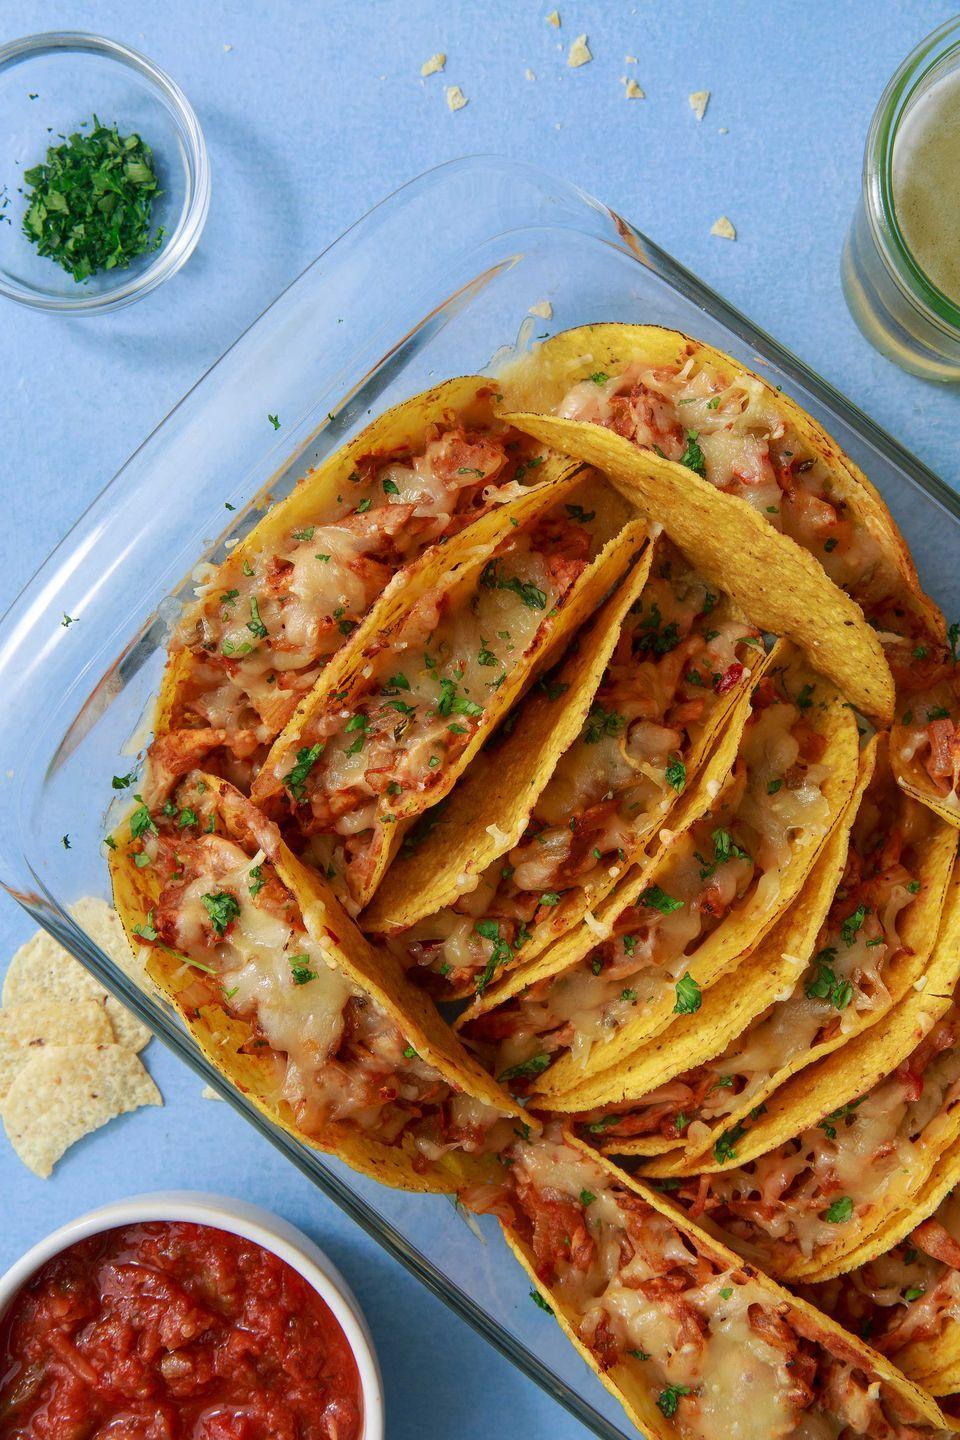 """<p>All tacos should be cheesy. </p><p>Get the recipe from <a href=""""https://www.delish.com/cooking/recipe-ideas/a50265/cheesy-baked-tacos-recipe/"""" rel=""""nofollow noopener"""" target=""""_blank"""" data-ylk=""""slk:Delish"""" class=""""link rapid-noclick-resp"""">Delish</a>. </p>"""